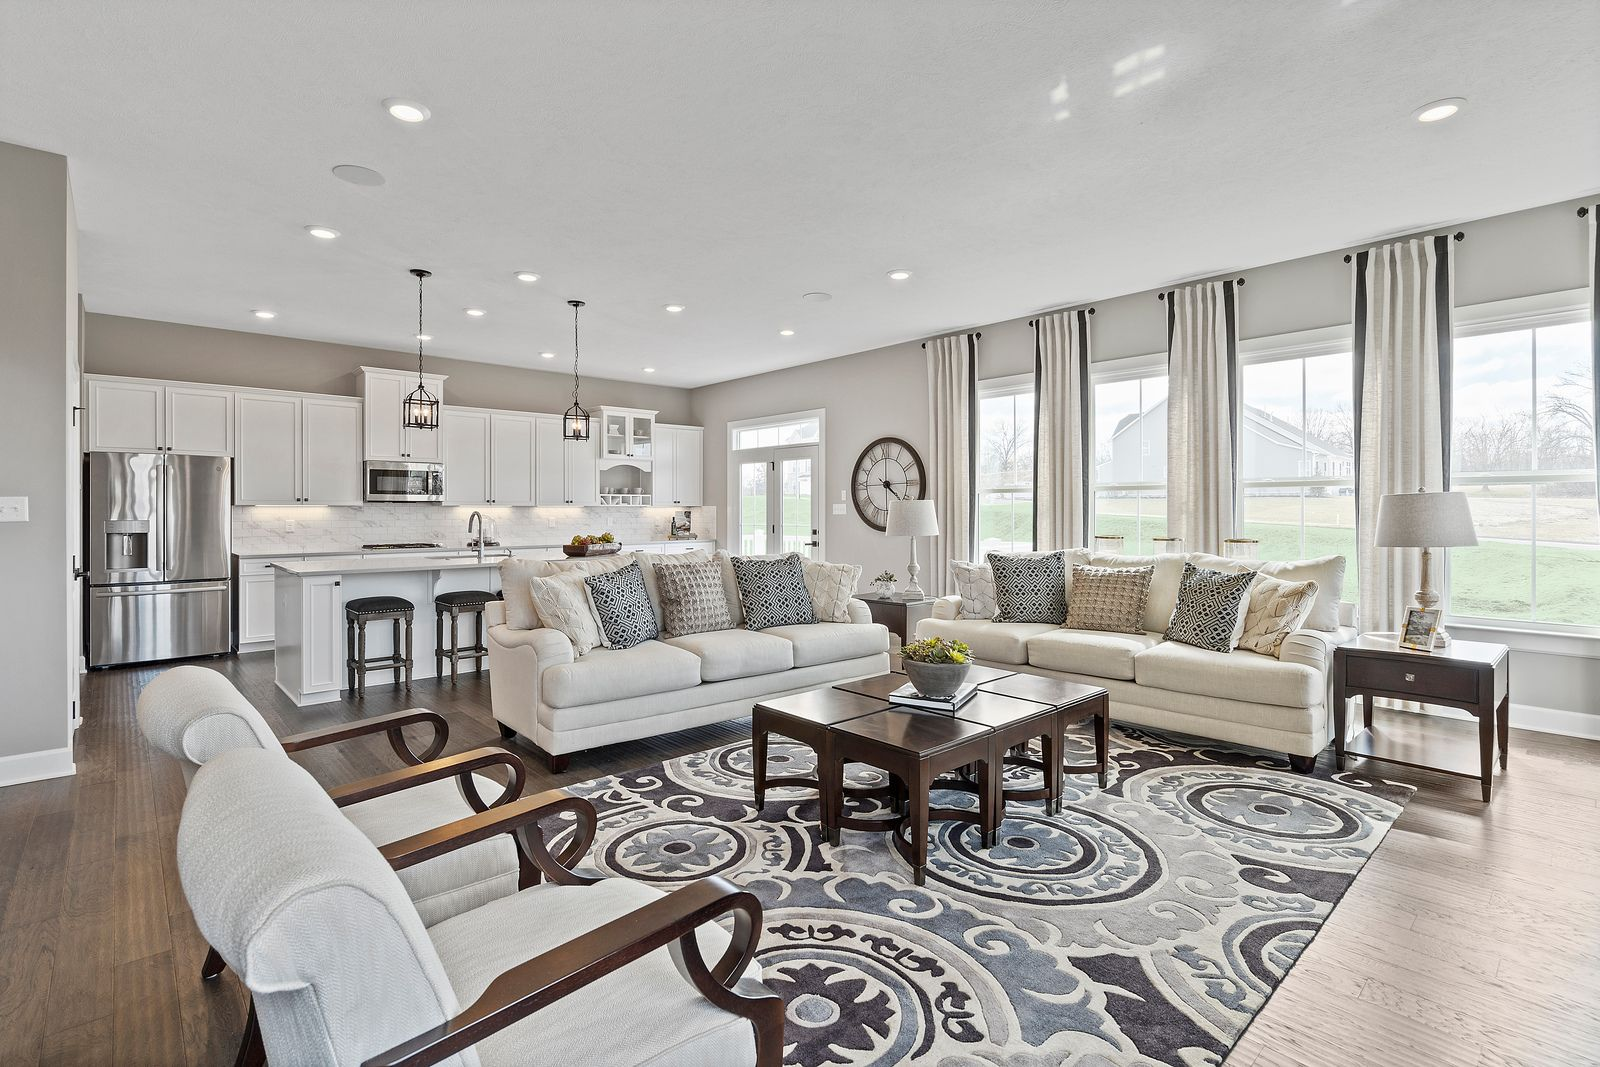 Welcome to Laurel Grove:Pine-Richland's only resort-style community offering modern customizable ranch-style homes, in a prime Pine Township location.Schedule your visit today to learn more!